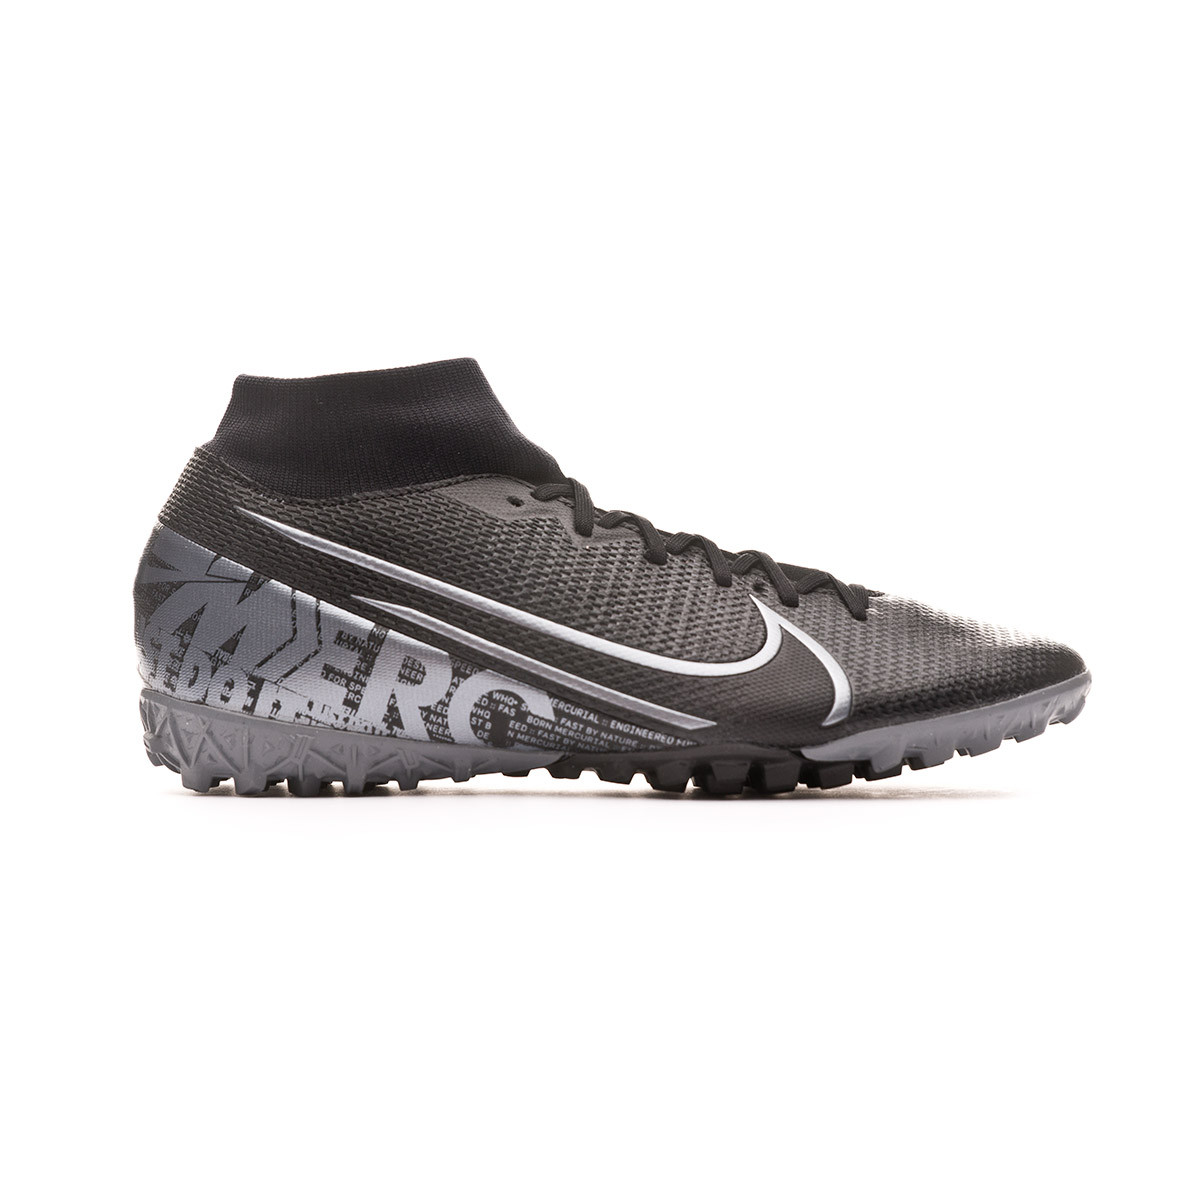 Agradecido ganso regional  Football Boots Nike Mercurial Superfly VII Academy Turf Black-Metallic cool  grey - Football store Fútbol Emotion